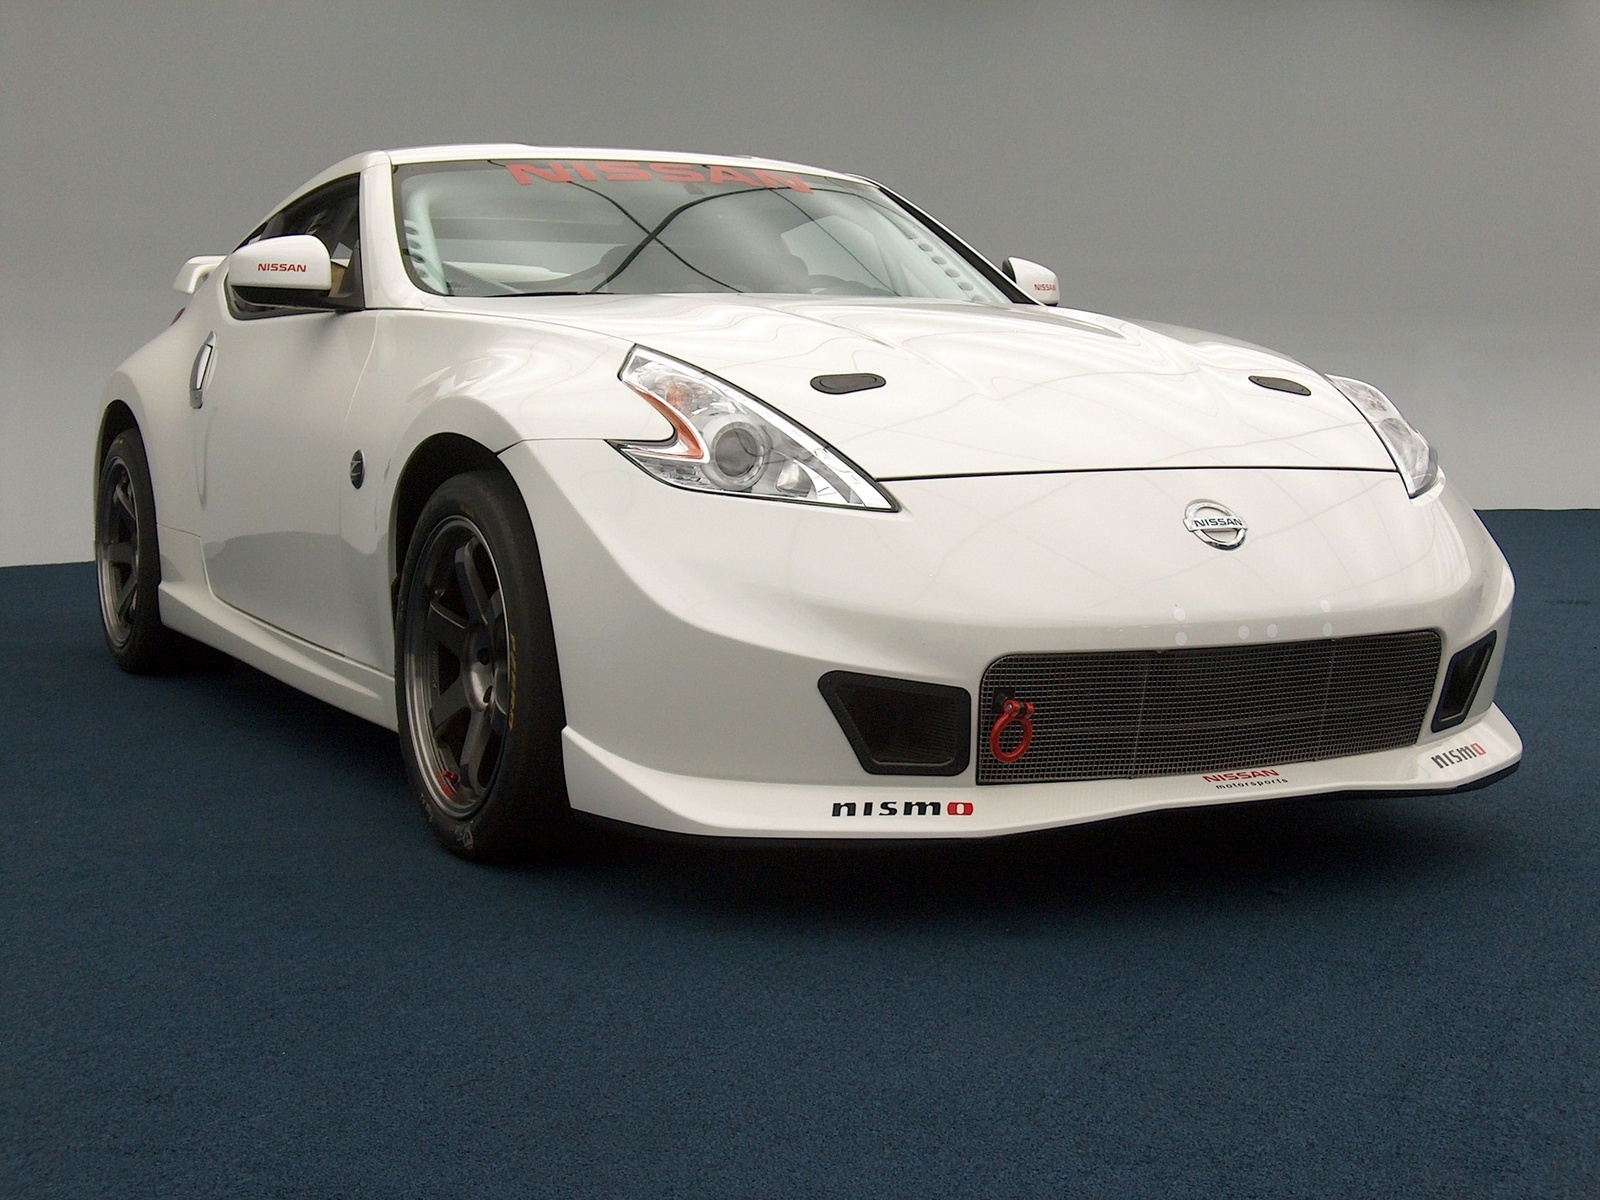 2011 nissan 370z nismo r c race racing tuning wallpaper. Black Bedroom Furniture Sets. Home Design Ideas